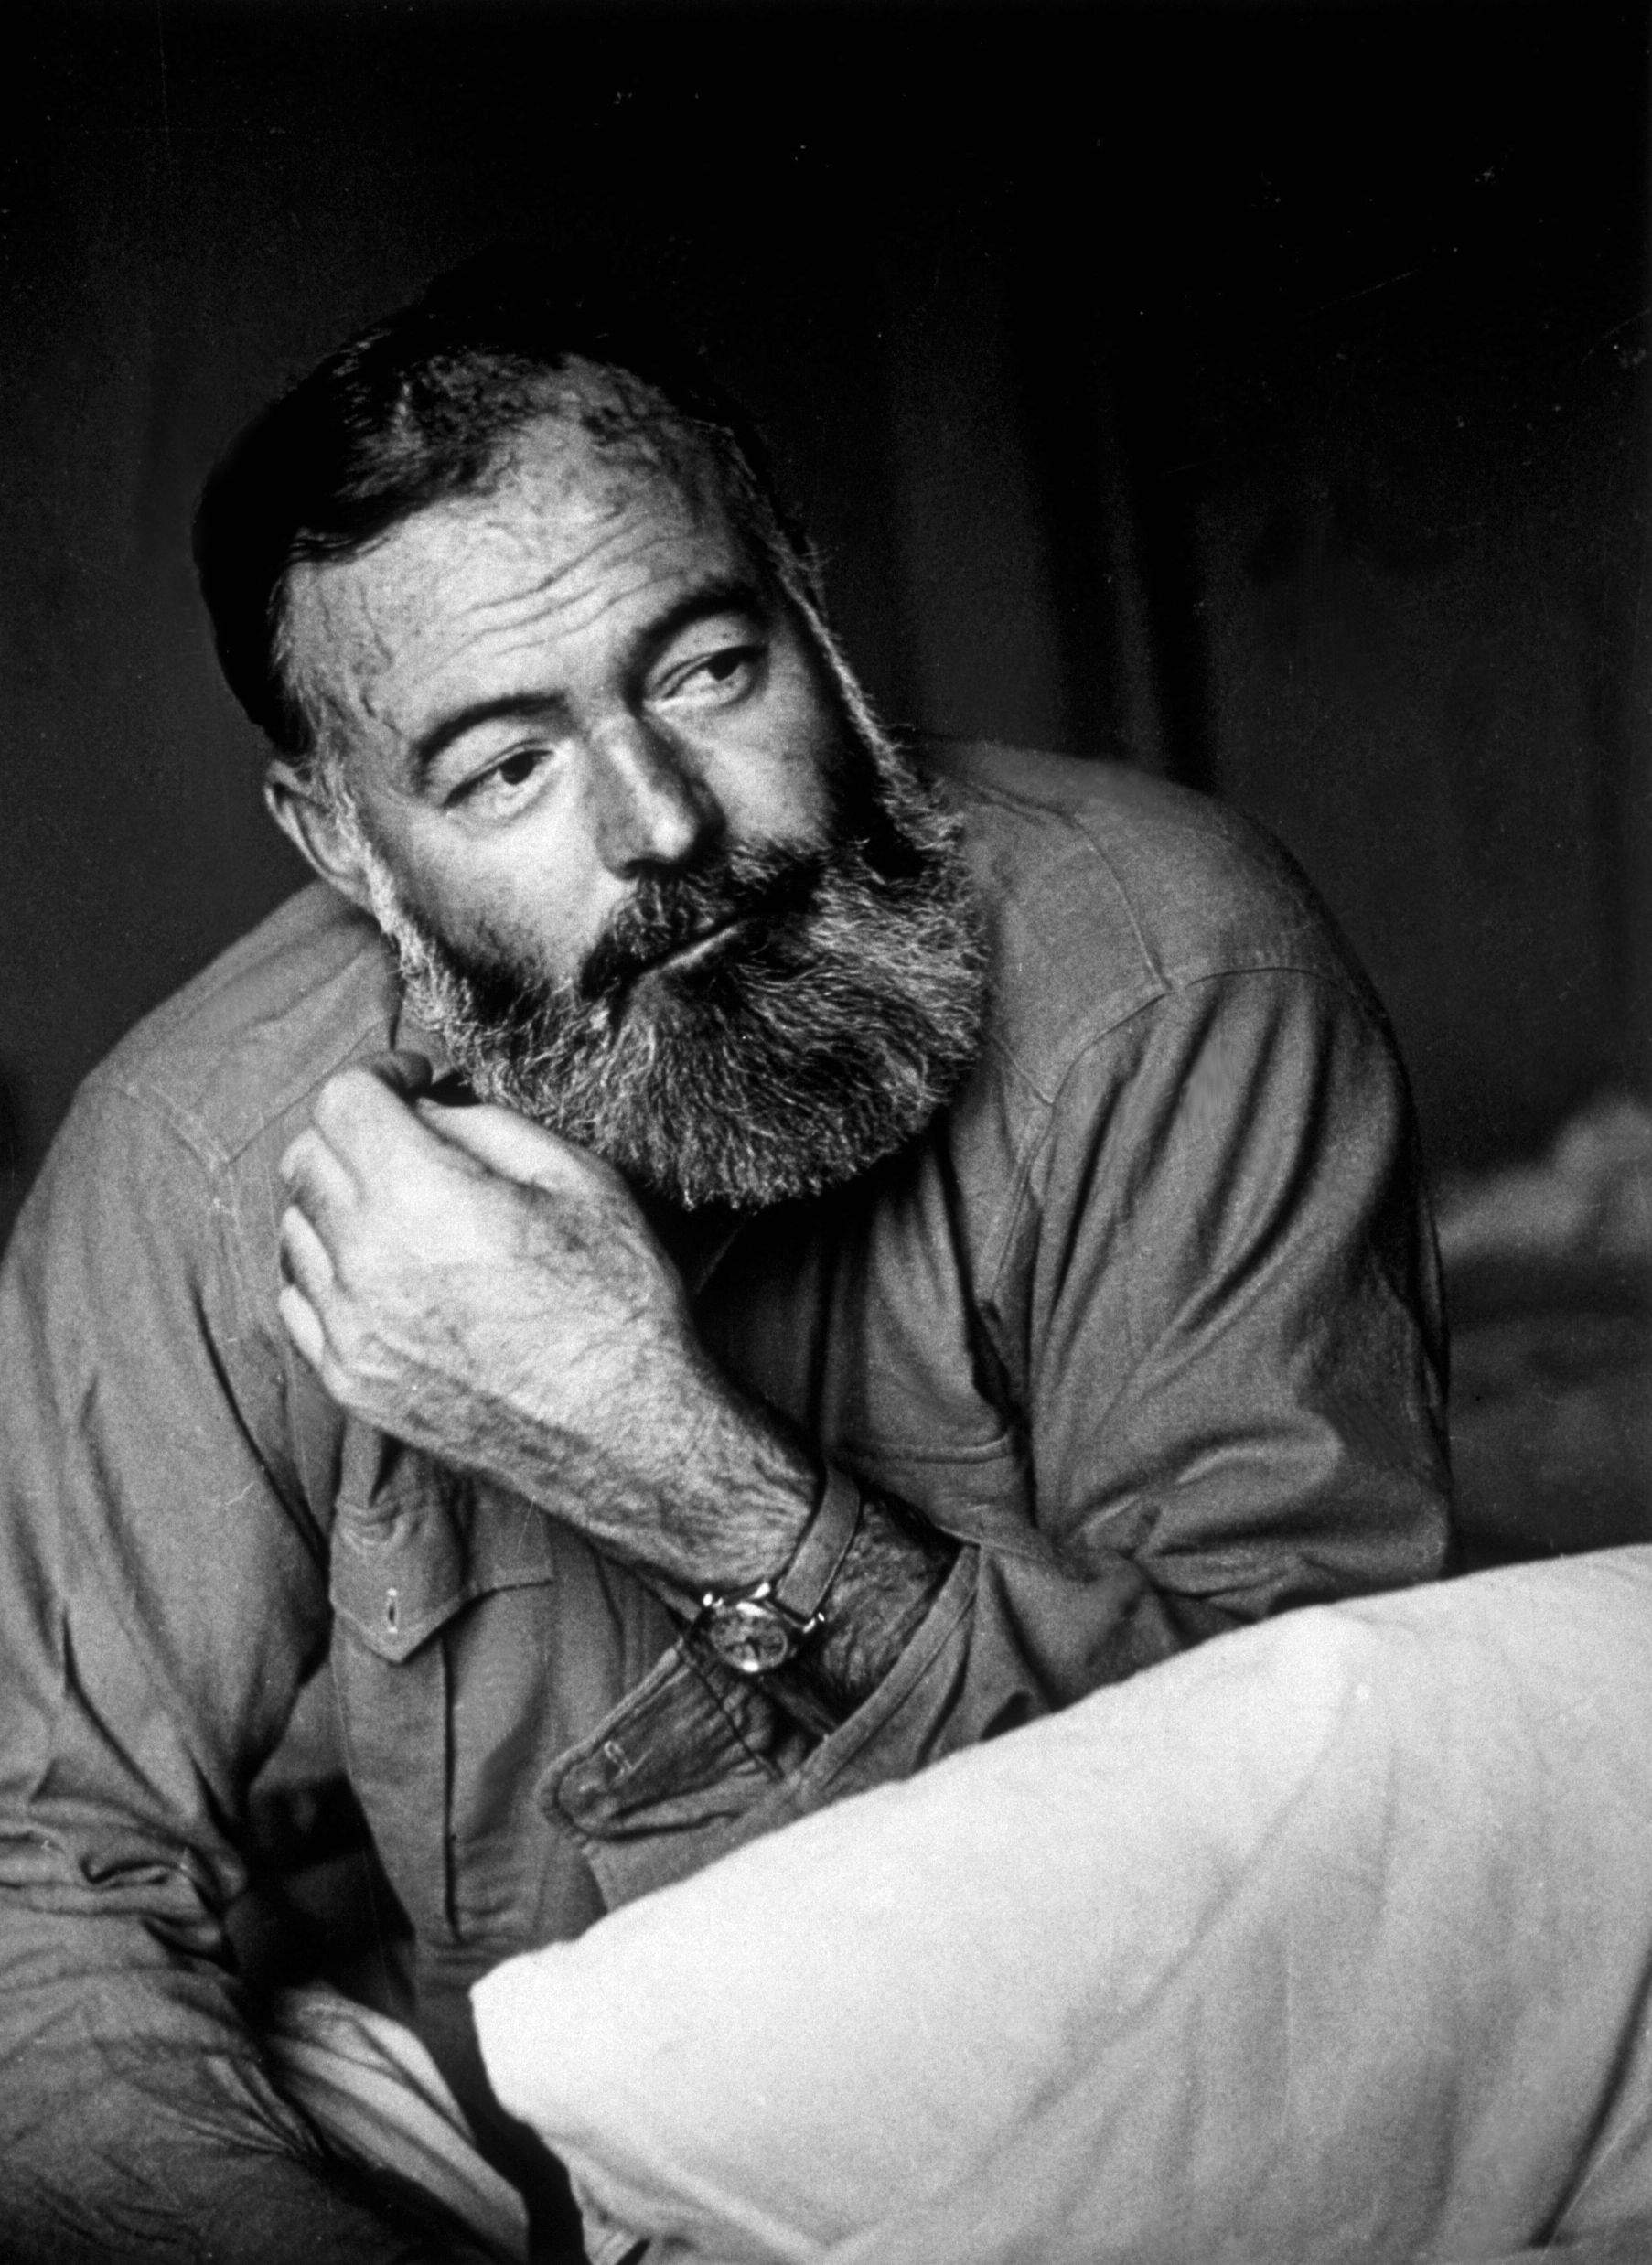 a biography and life work by ernest hemingway an american author When discussing american literature, the name that comes to mind most prominently is ernest hemingway his writing style has greatly influenced 20th-century literature as much as his life of adventure has inspired later generations.